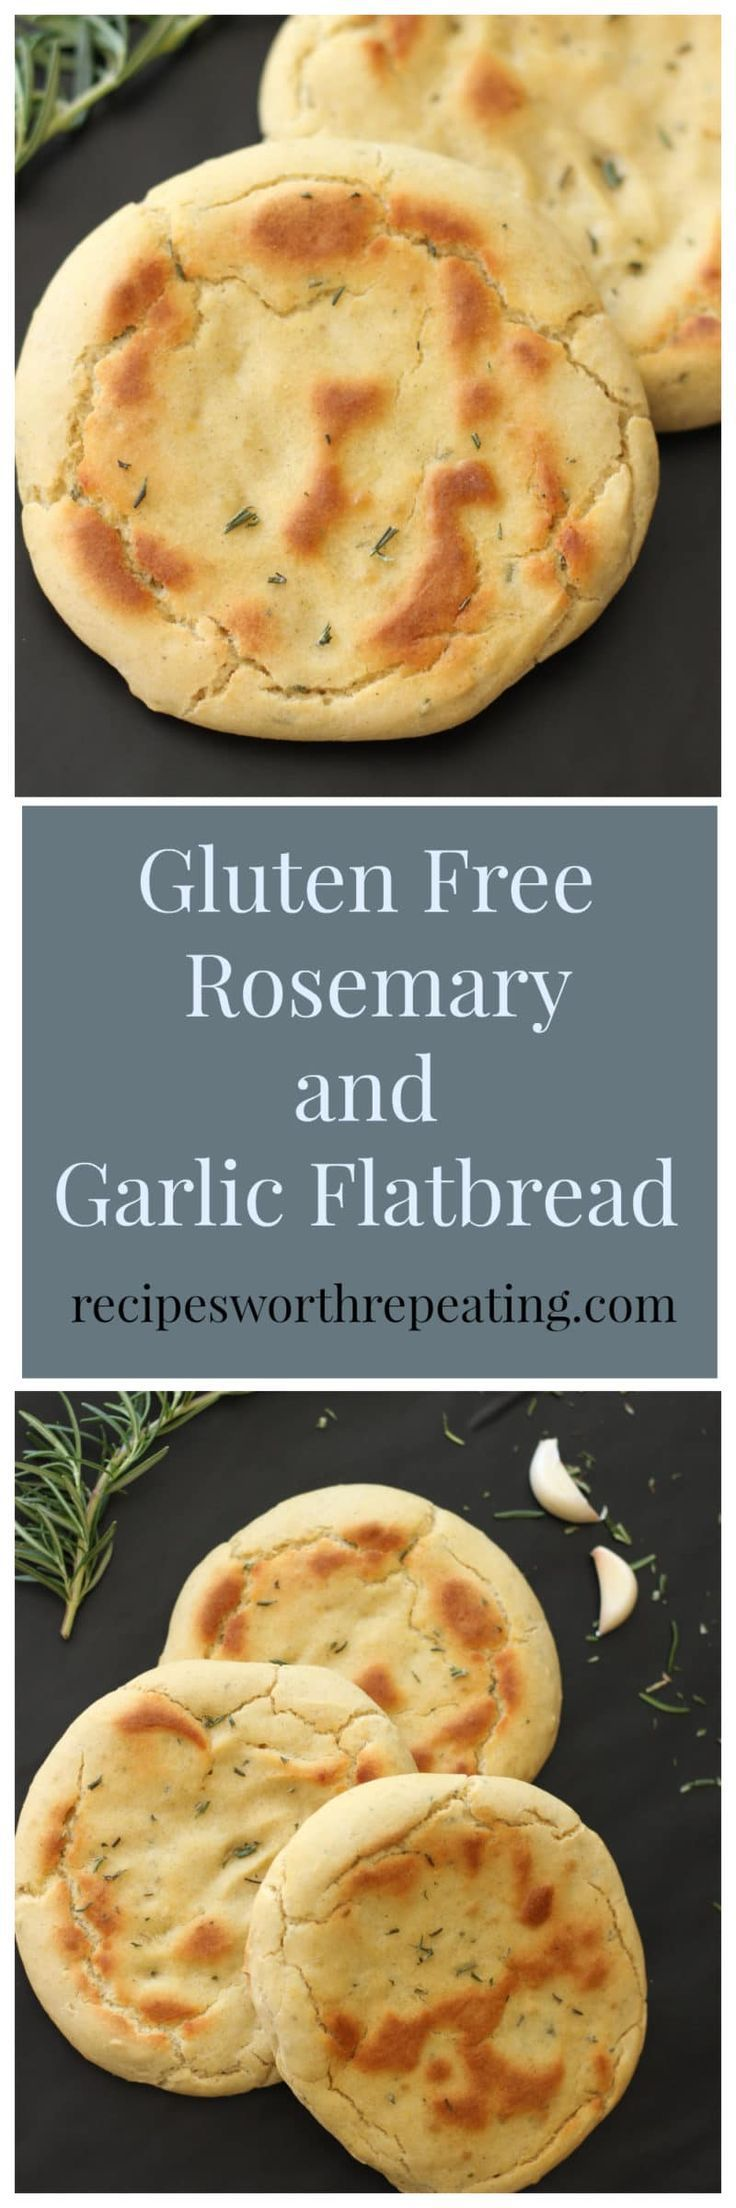 Gluten Free Rosemary Garlic Flatbread